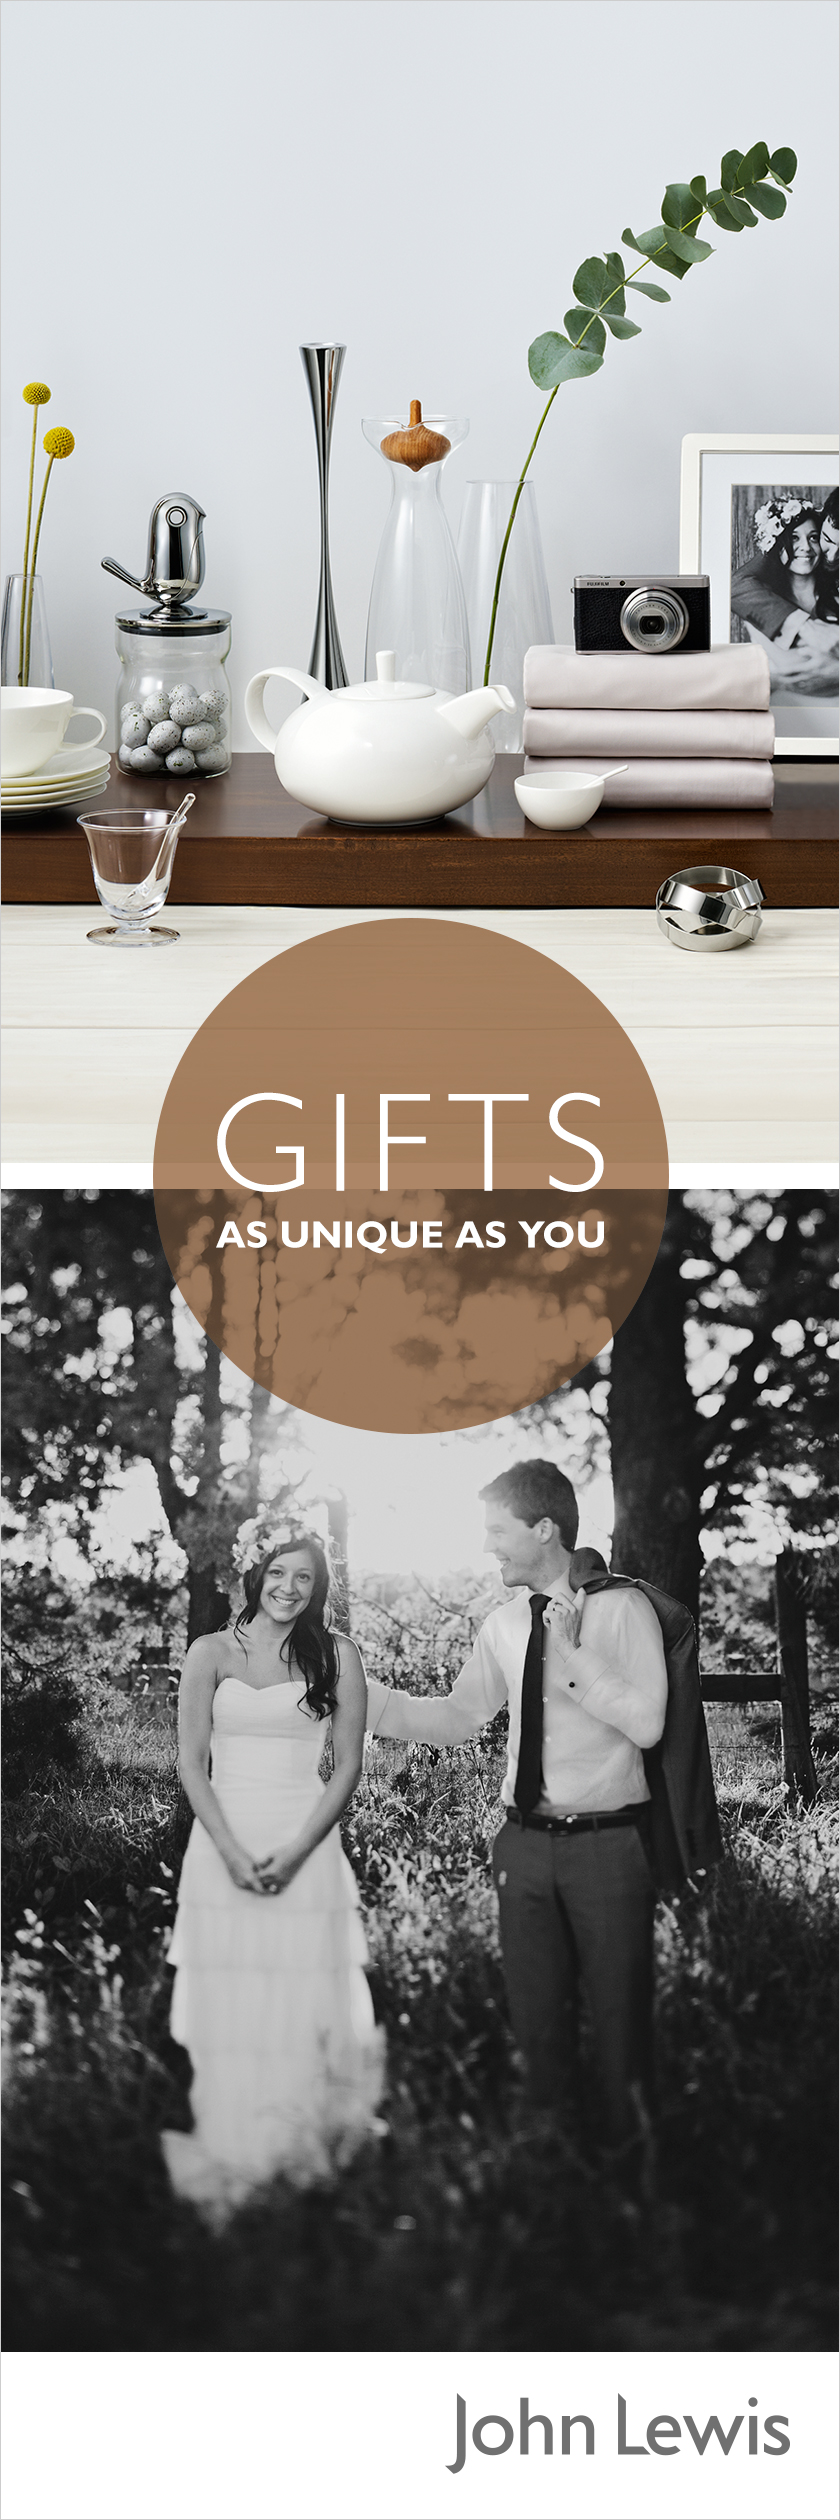 whether you're celebrating a wedding or civil partnership